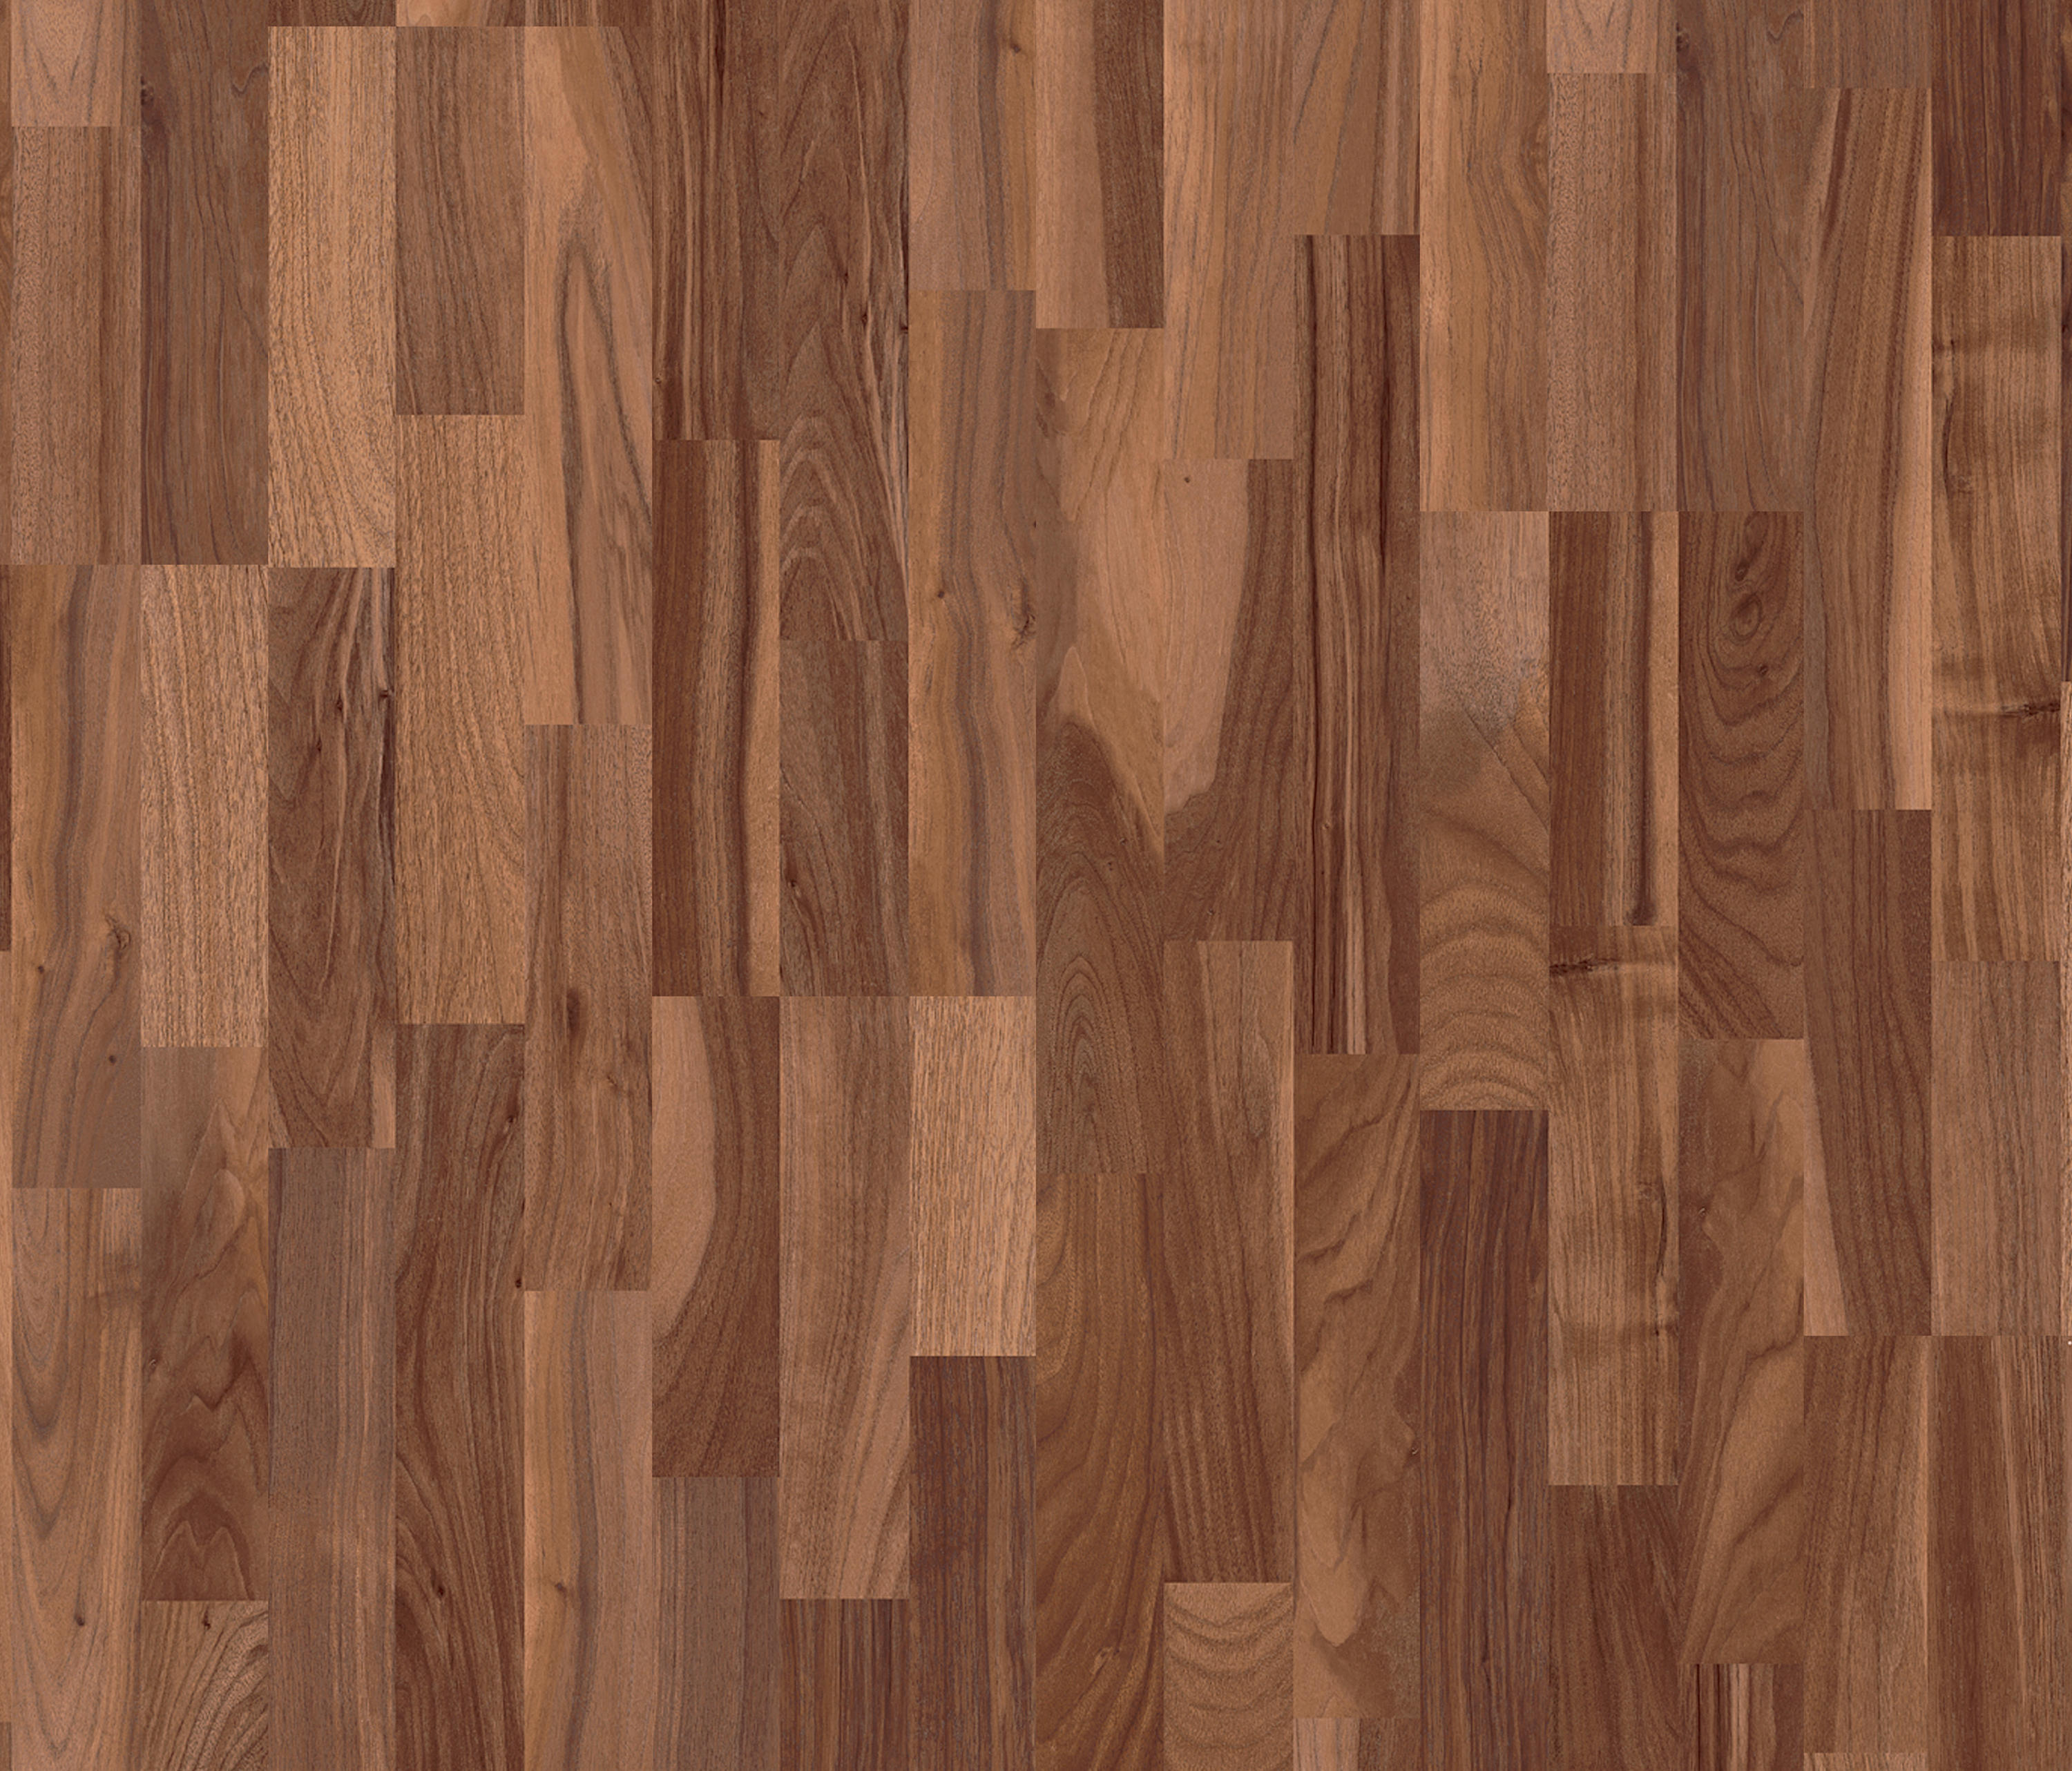 Domestic Extra Walnut 3 Strip Laminate Flooring From